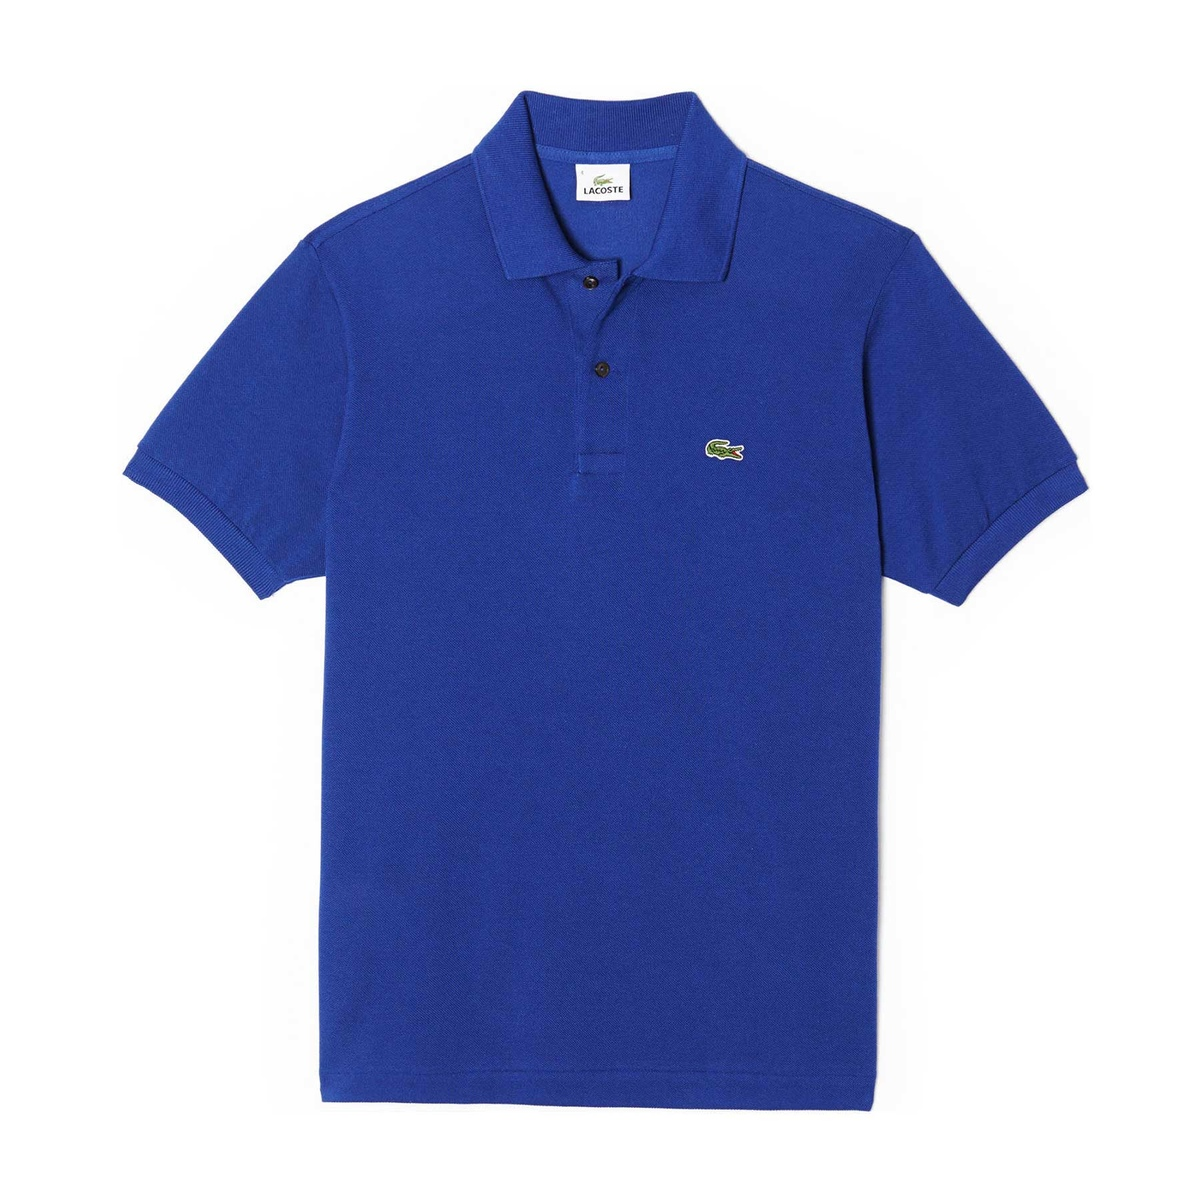 Polo L1212 bluette